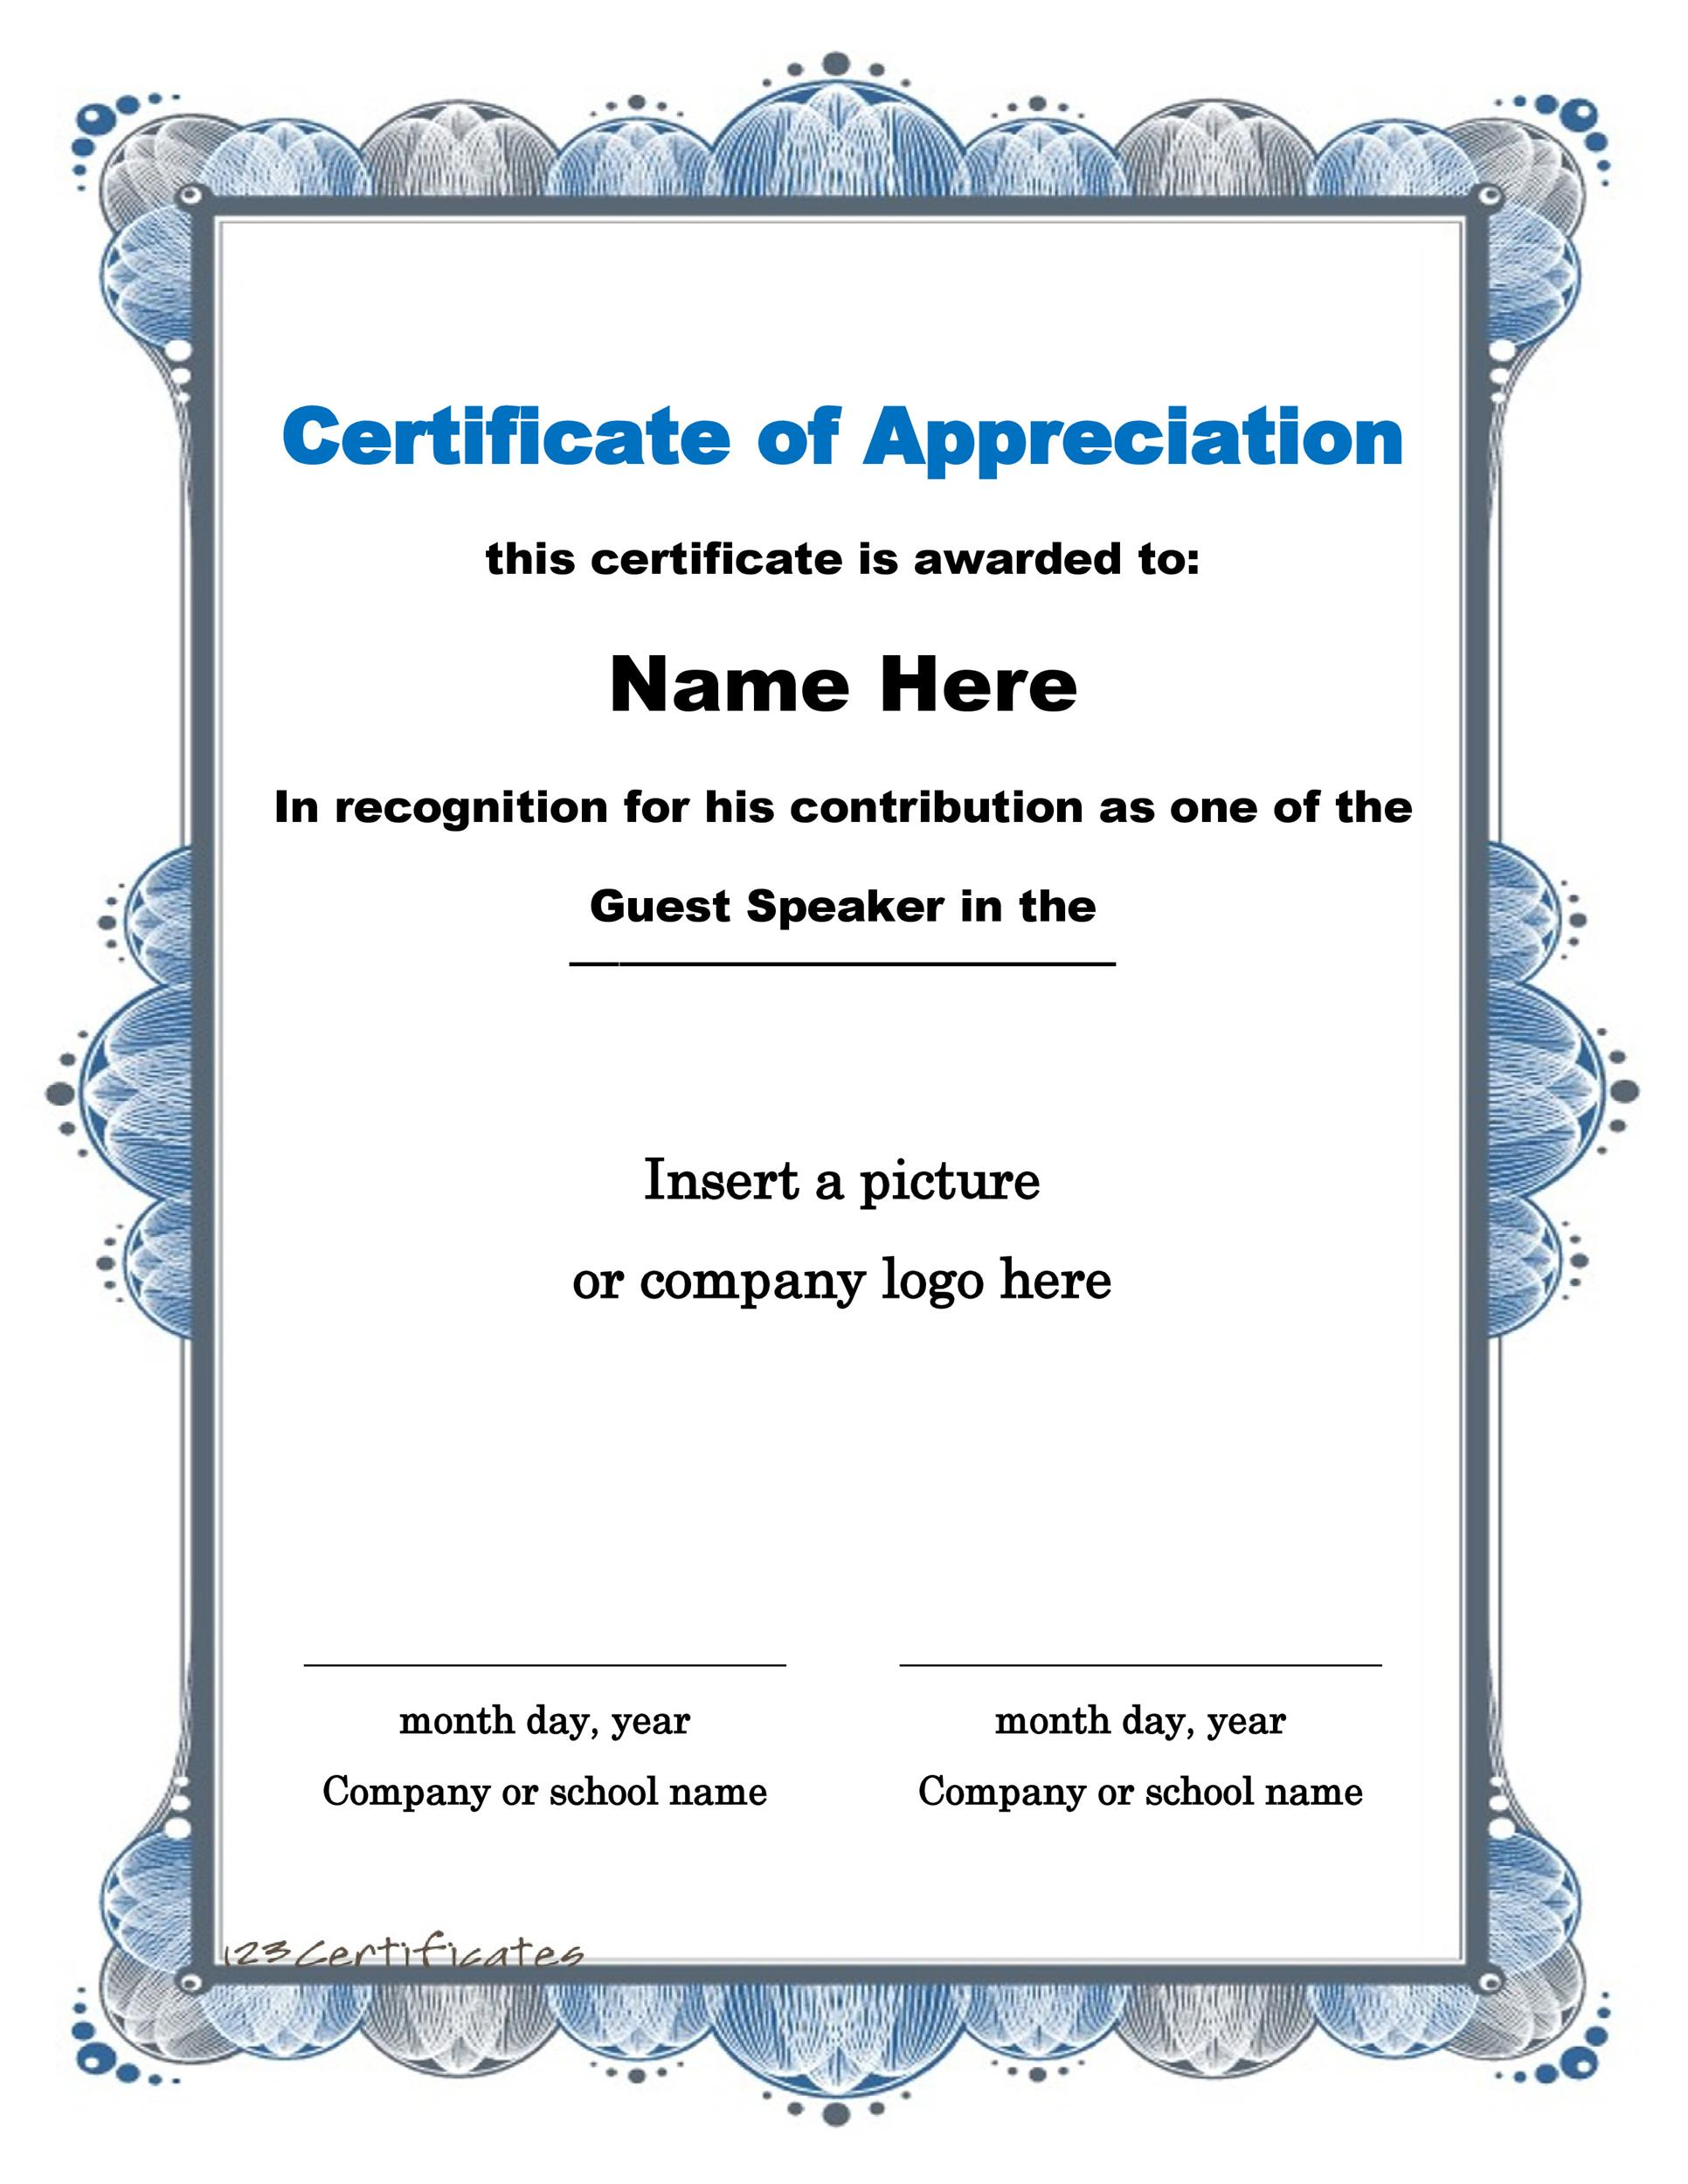 30 free certificate of appreciation templates and letters printable certificate of appreciation 02 yadclub Images